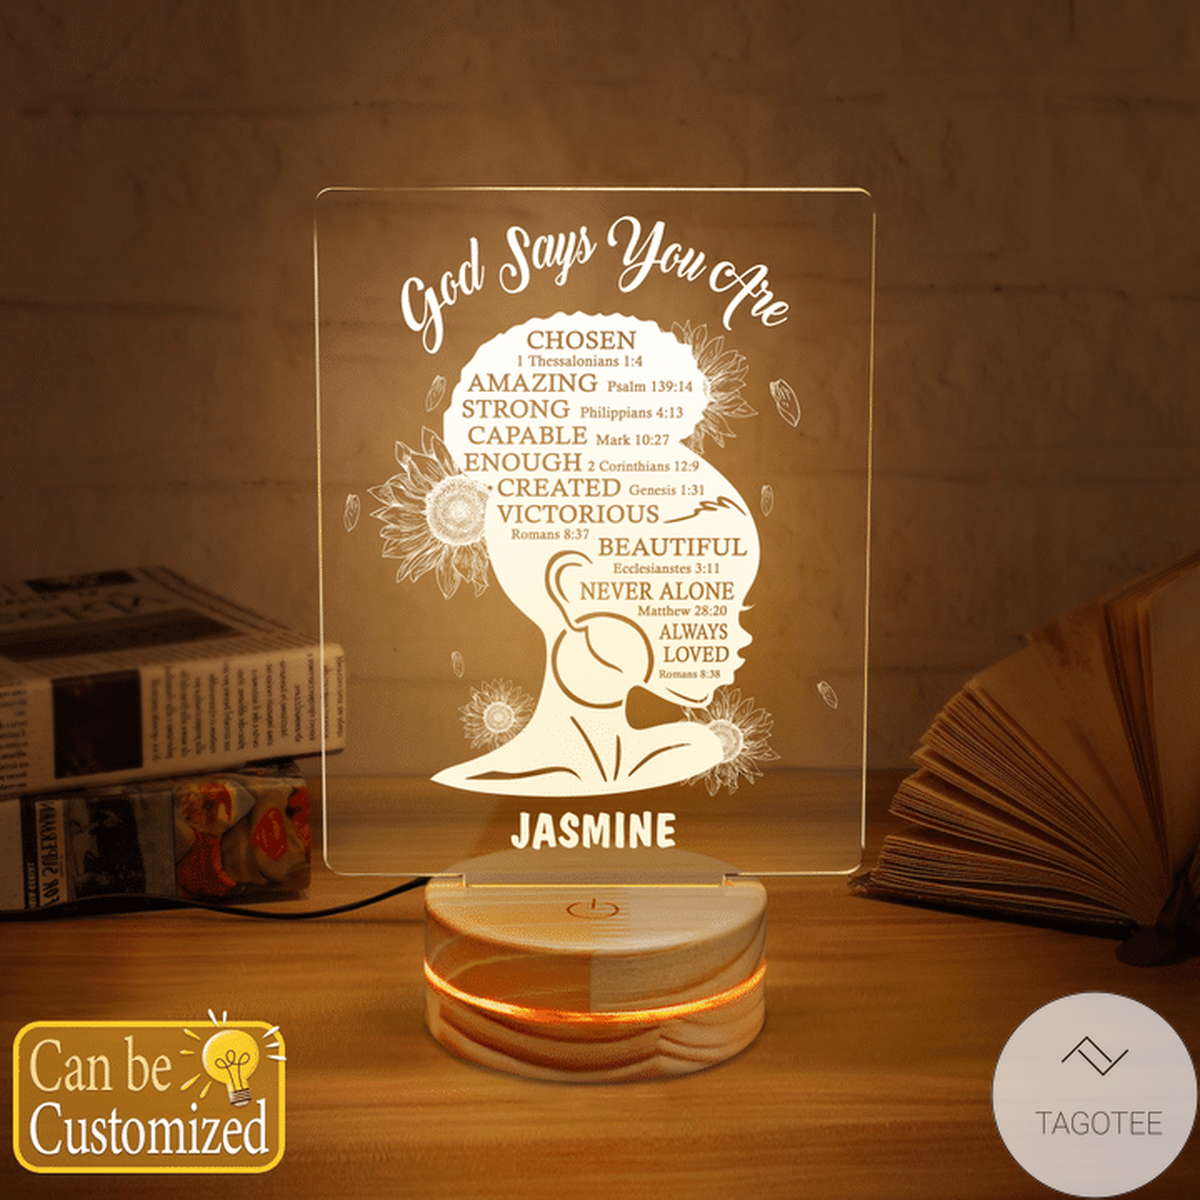 Personalized Afro Girl God Say You Are Chosen Amazing Strong Capable UV LED Lamp, Night Light Lamps